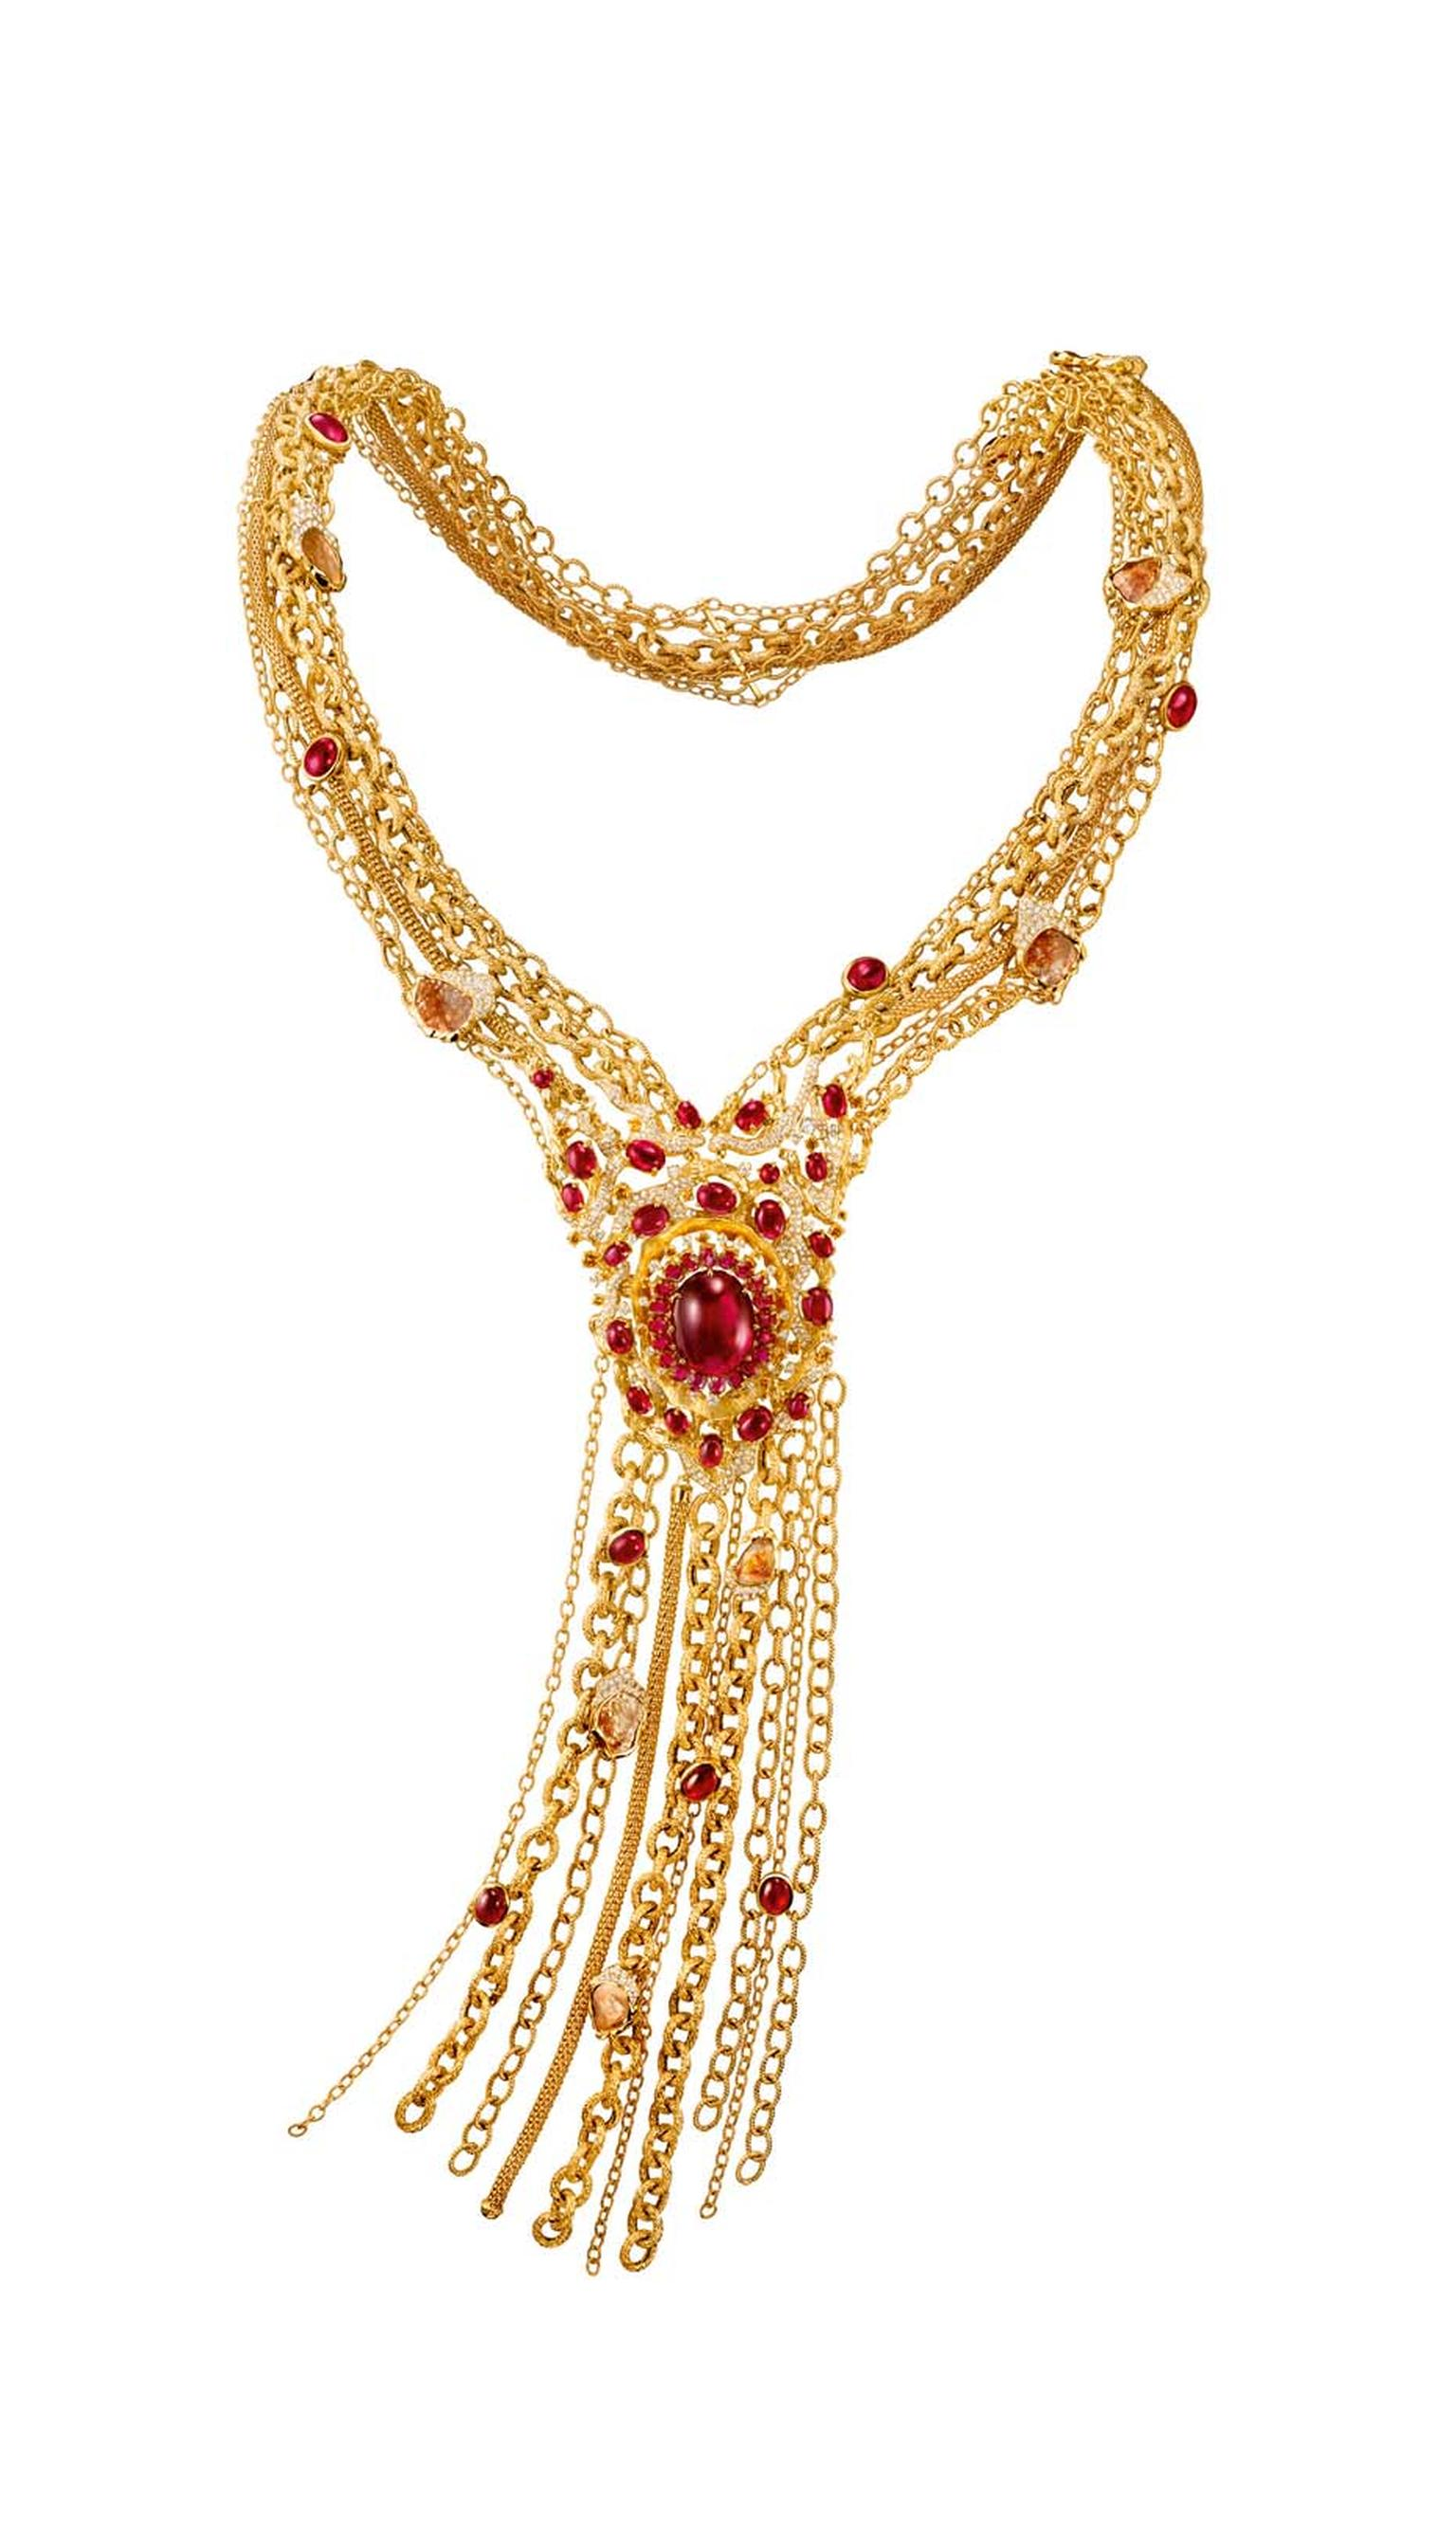 Chow Tai Fook's gold Chant necklace from the Reflections of Siem high jewellery collection, set with a 27.65-carat oval red tourmaline cabochon set in yellow gold, with tassels mimicking the roots of a banyan tree, diamond-studded branches and tourmaline